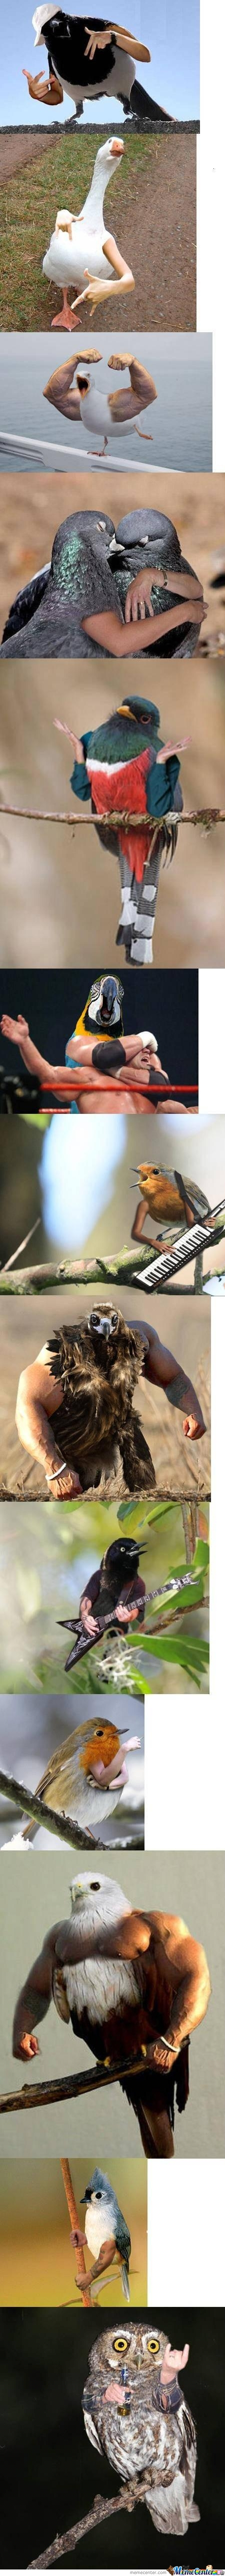 Just Some Birds With Hands